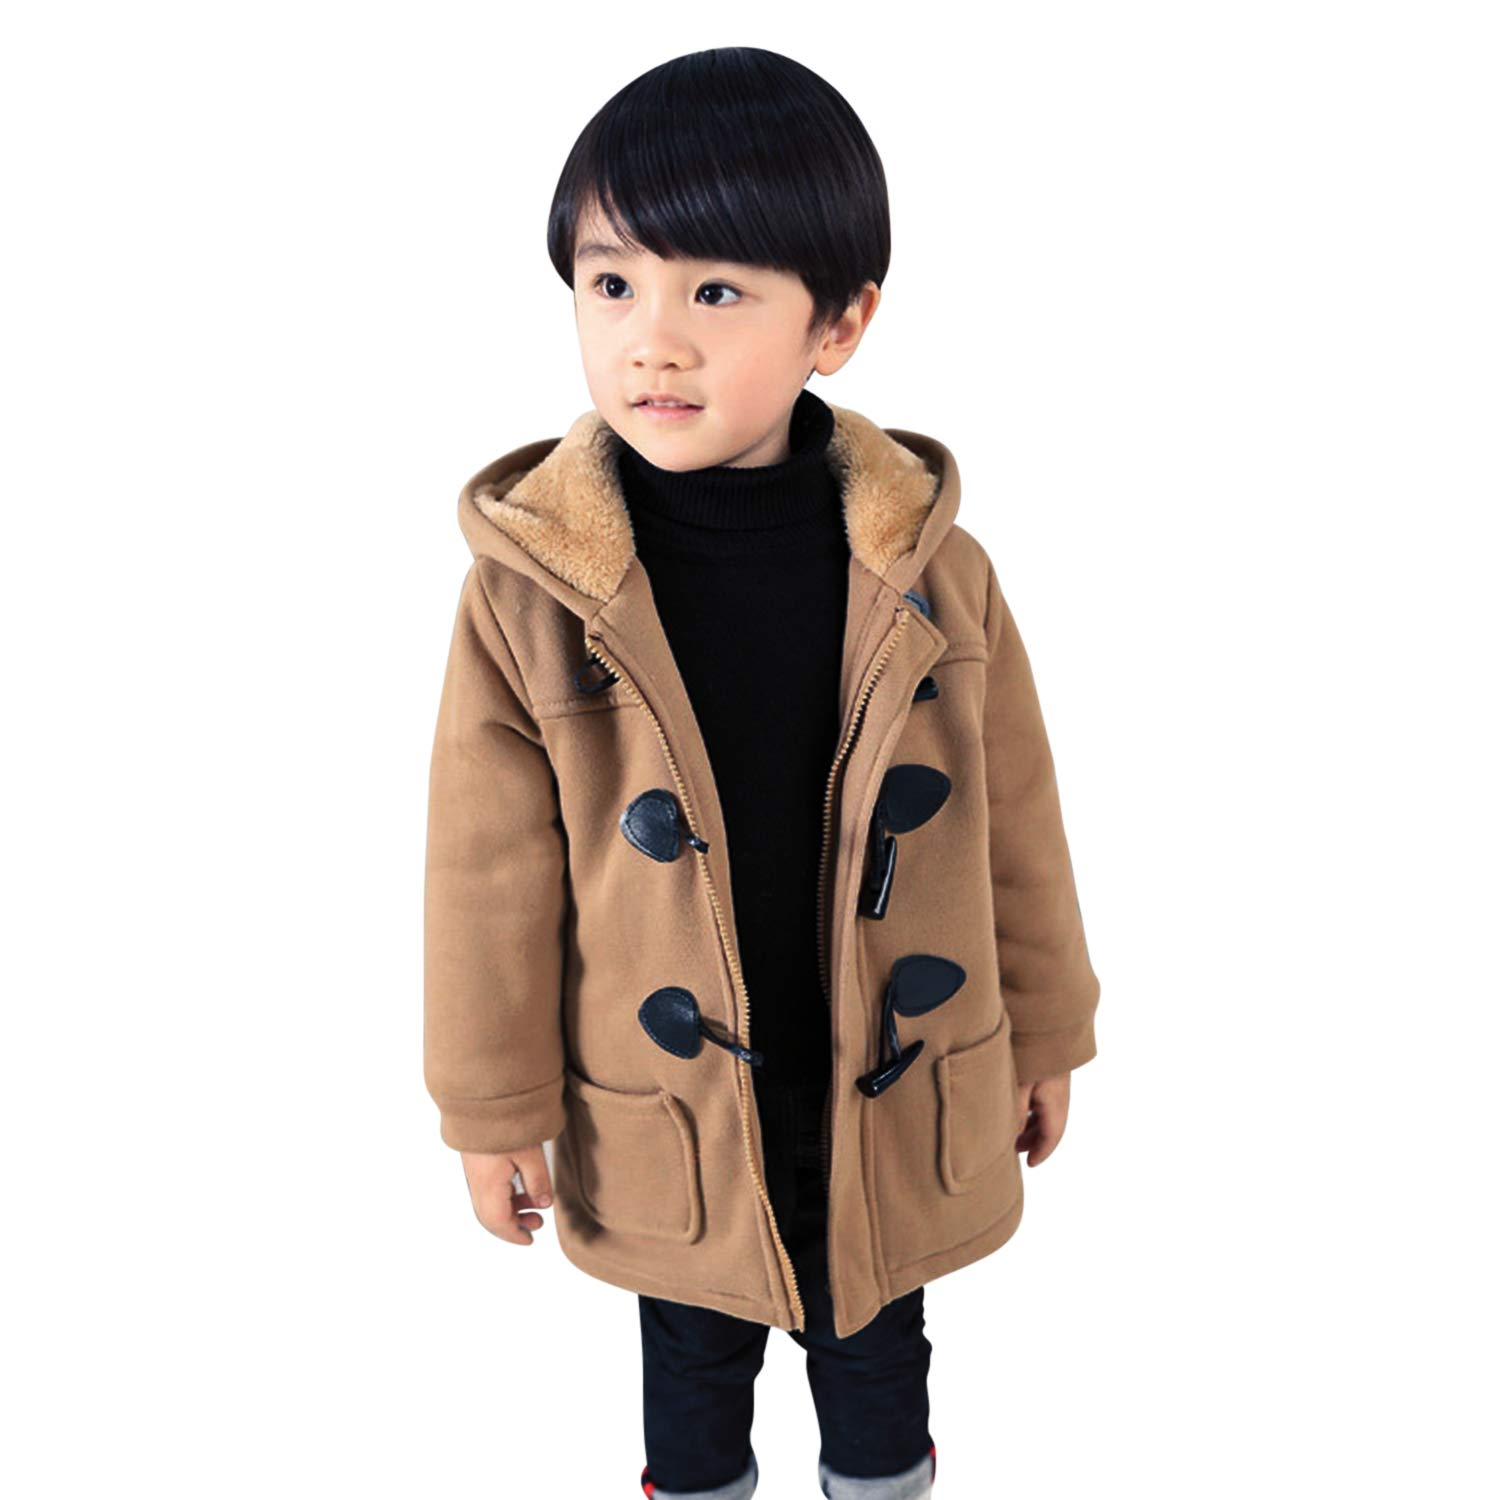 Evelin LEE Baby Boys Outwear Fleece Lined Jacket Toggle Button Duffle Coats with Hoodie